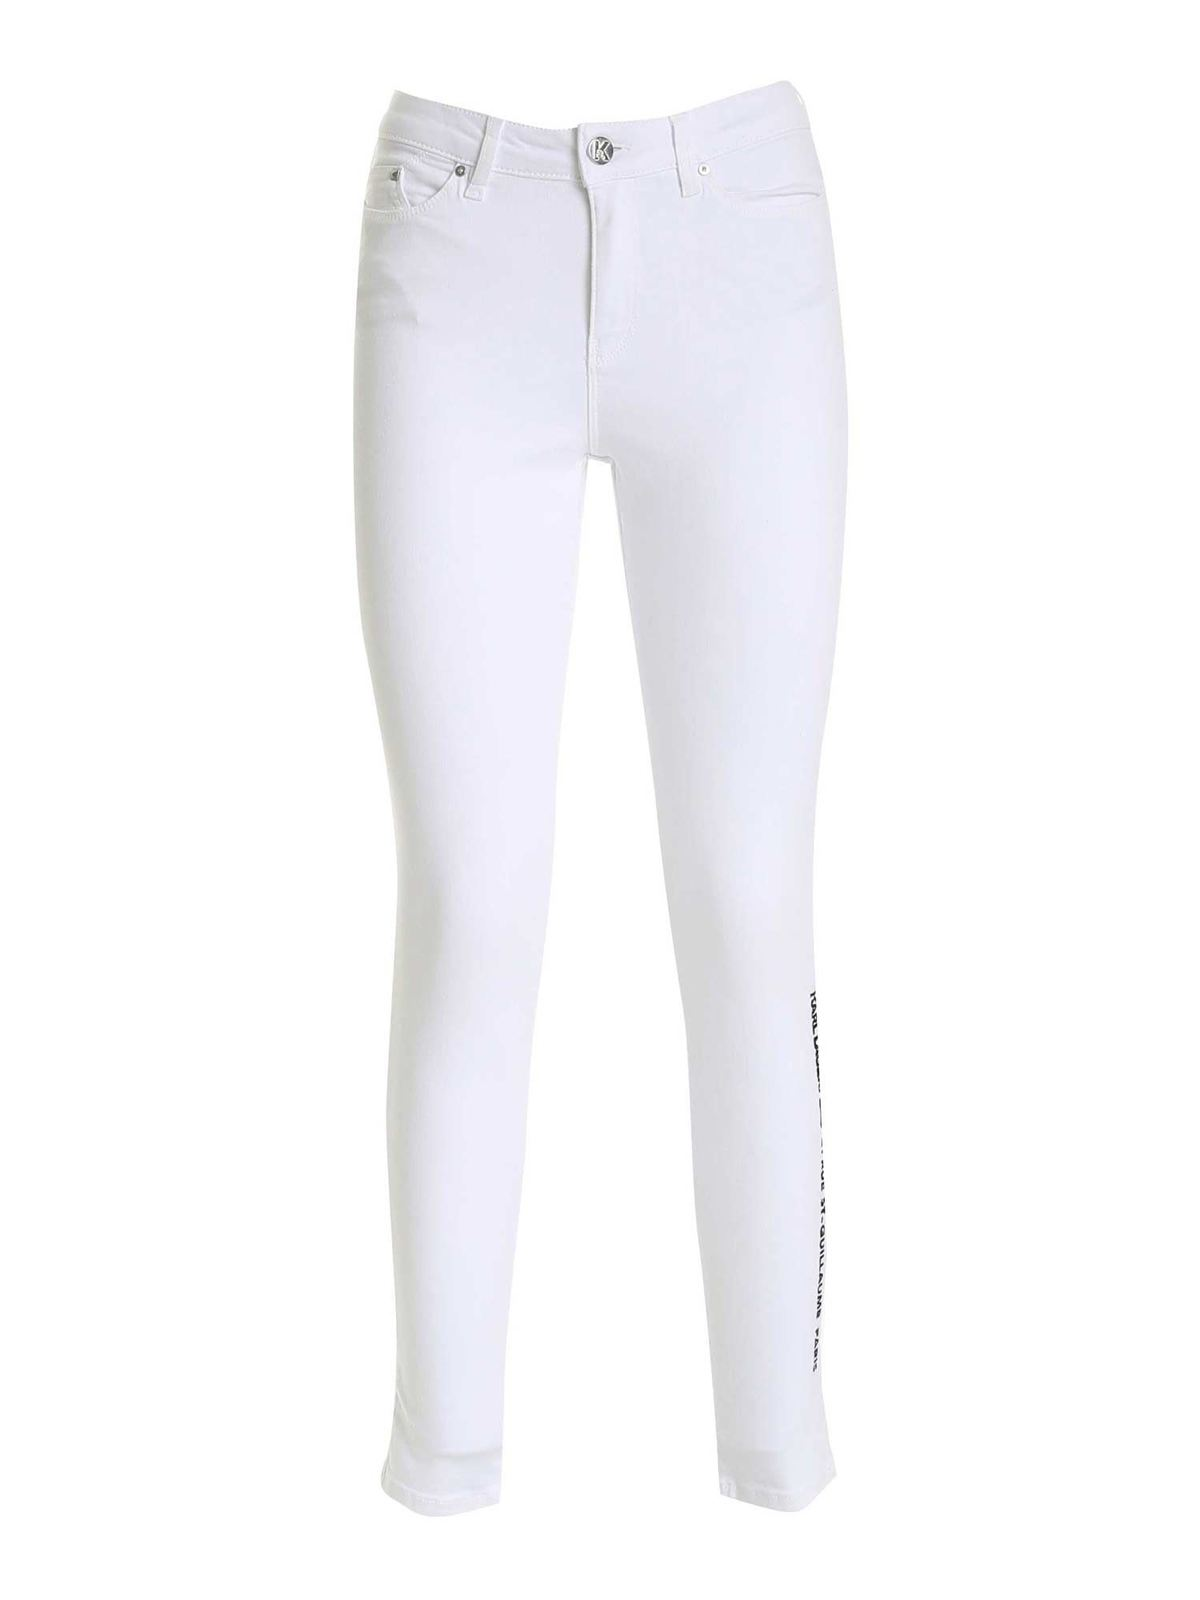 Karl Lagerfeld Logo Embroidery Pants In White